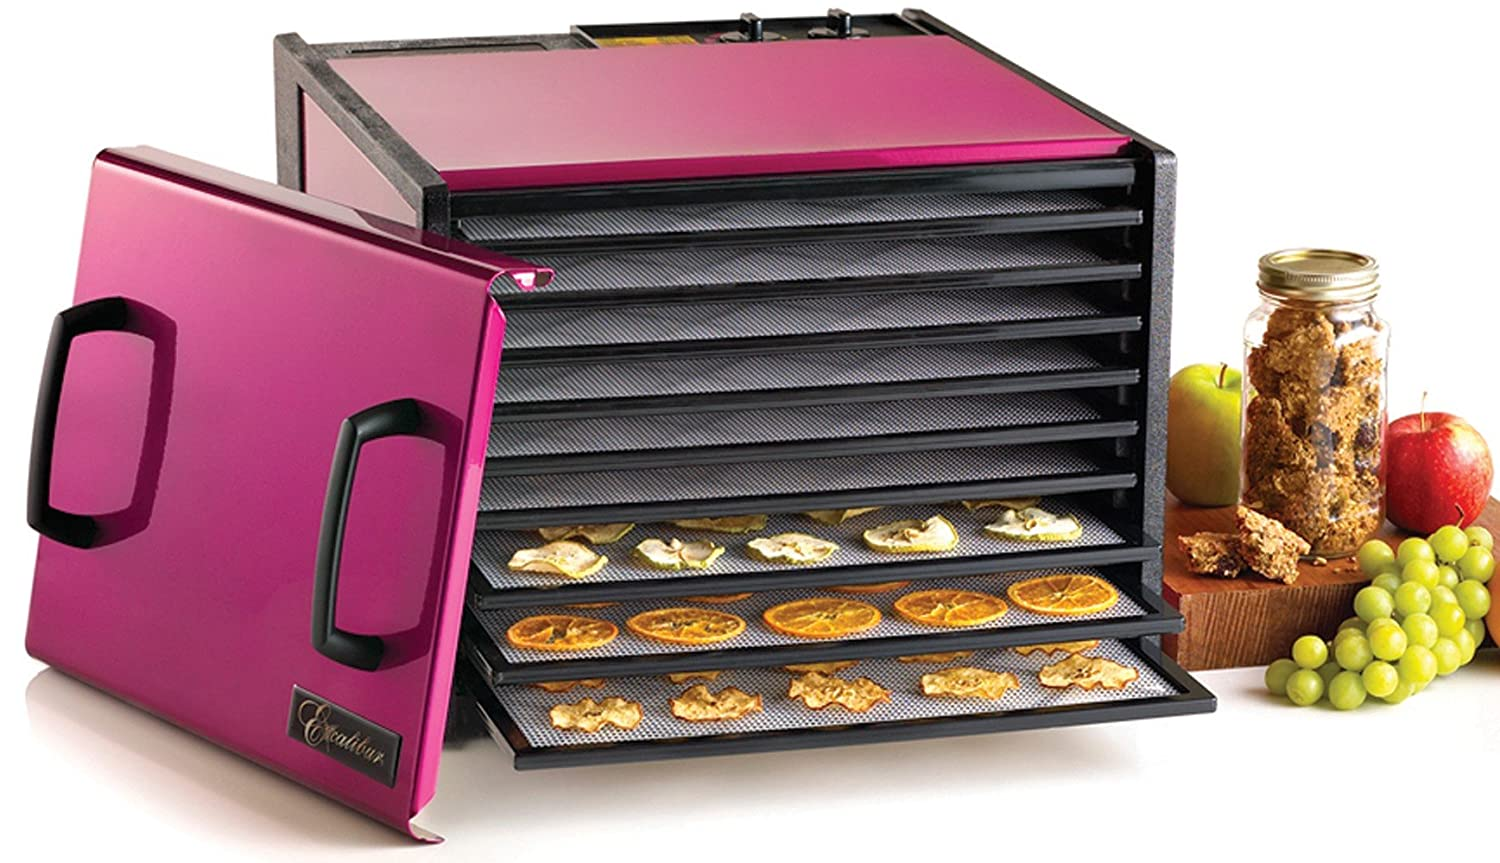 Excalibur D900RR 9-Tray Electric Food Dehydrator with Clear Door for Viewing Progress Features 26-Hour Timer Temperature Settings and Automatic Shut Off Made in USA, 9-Tray, Pink